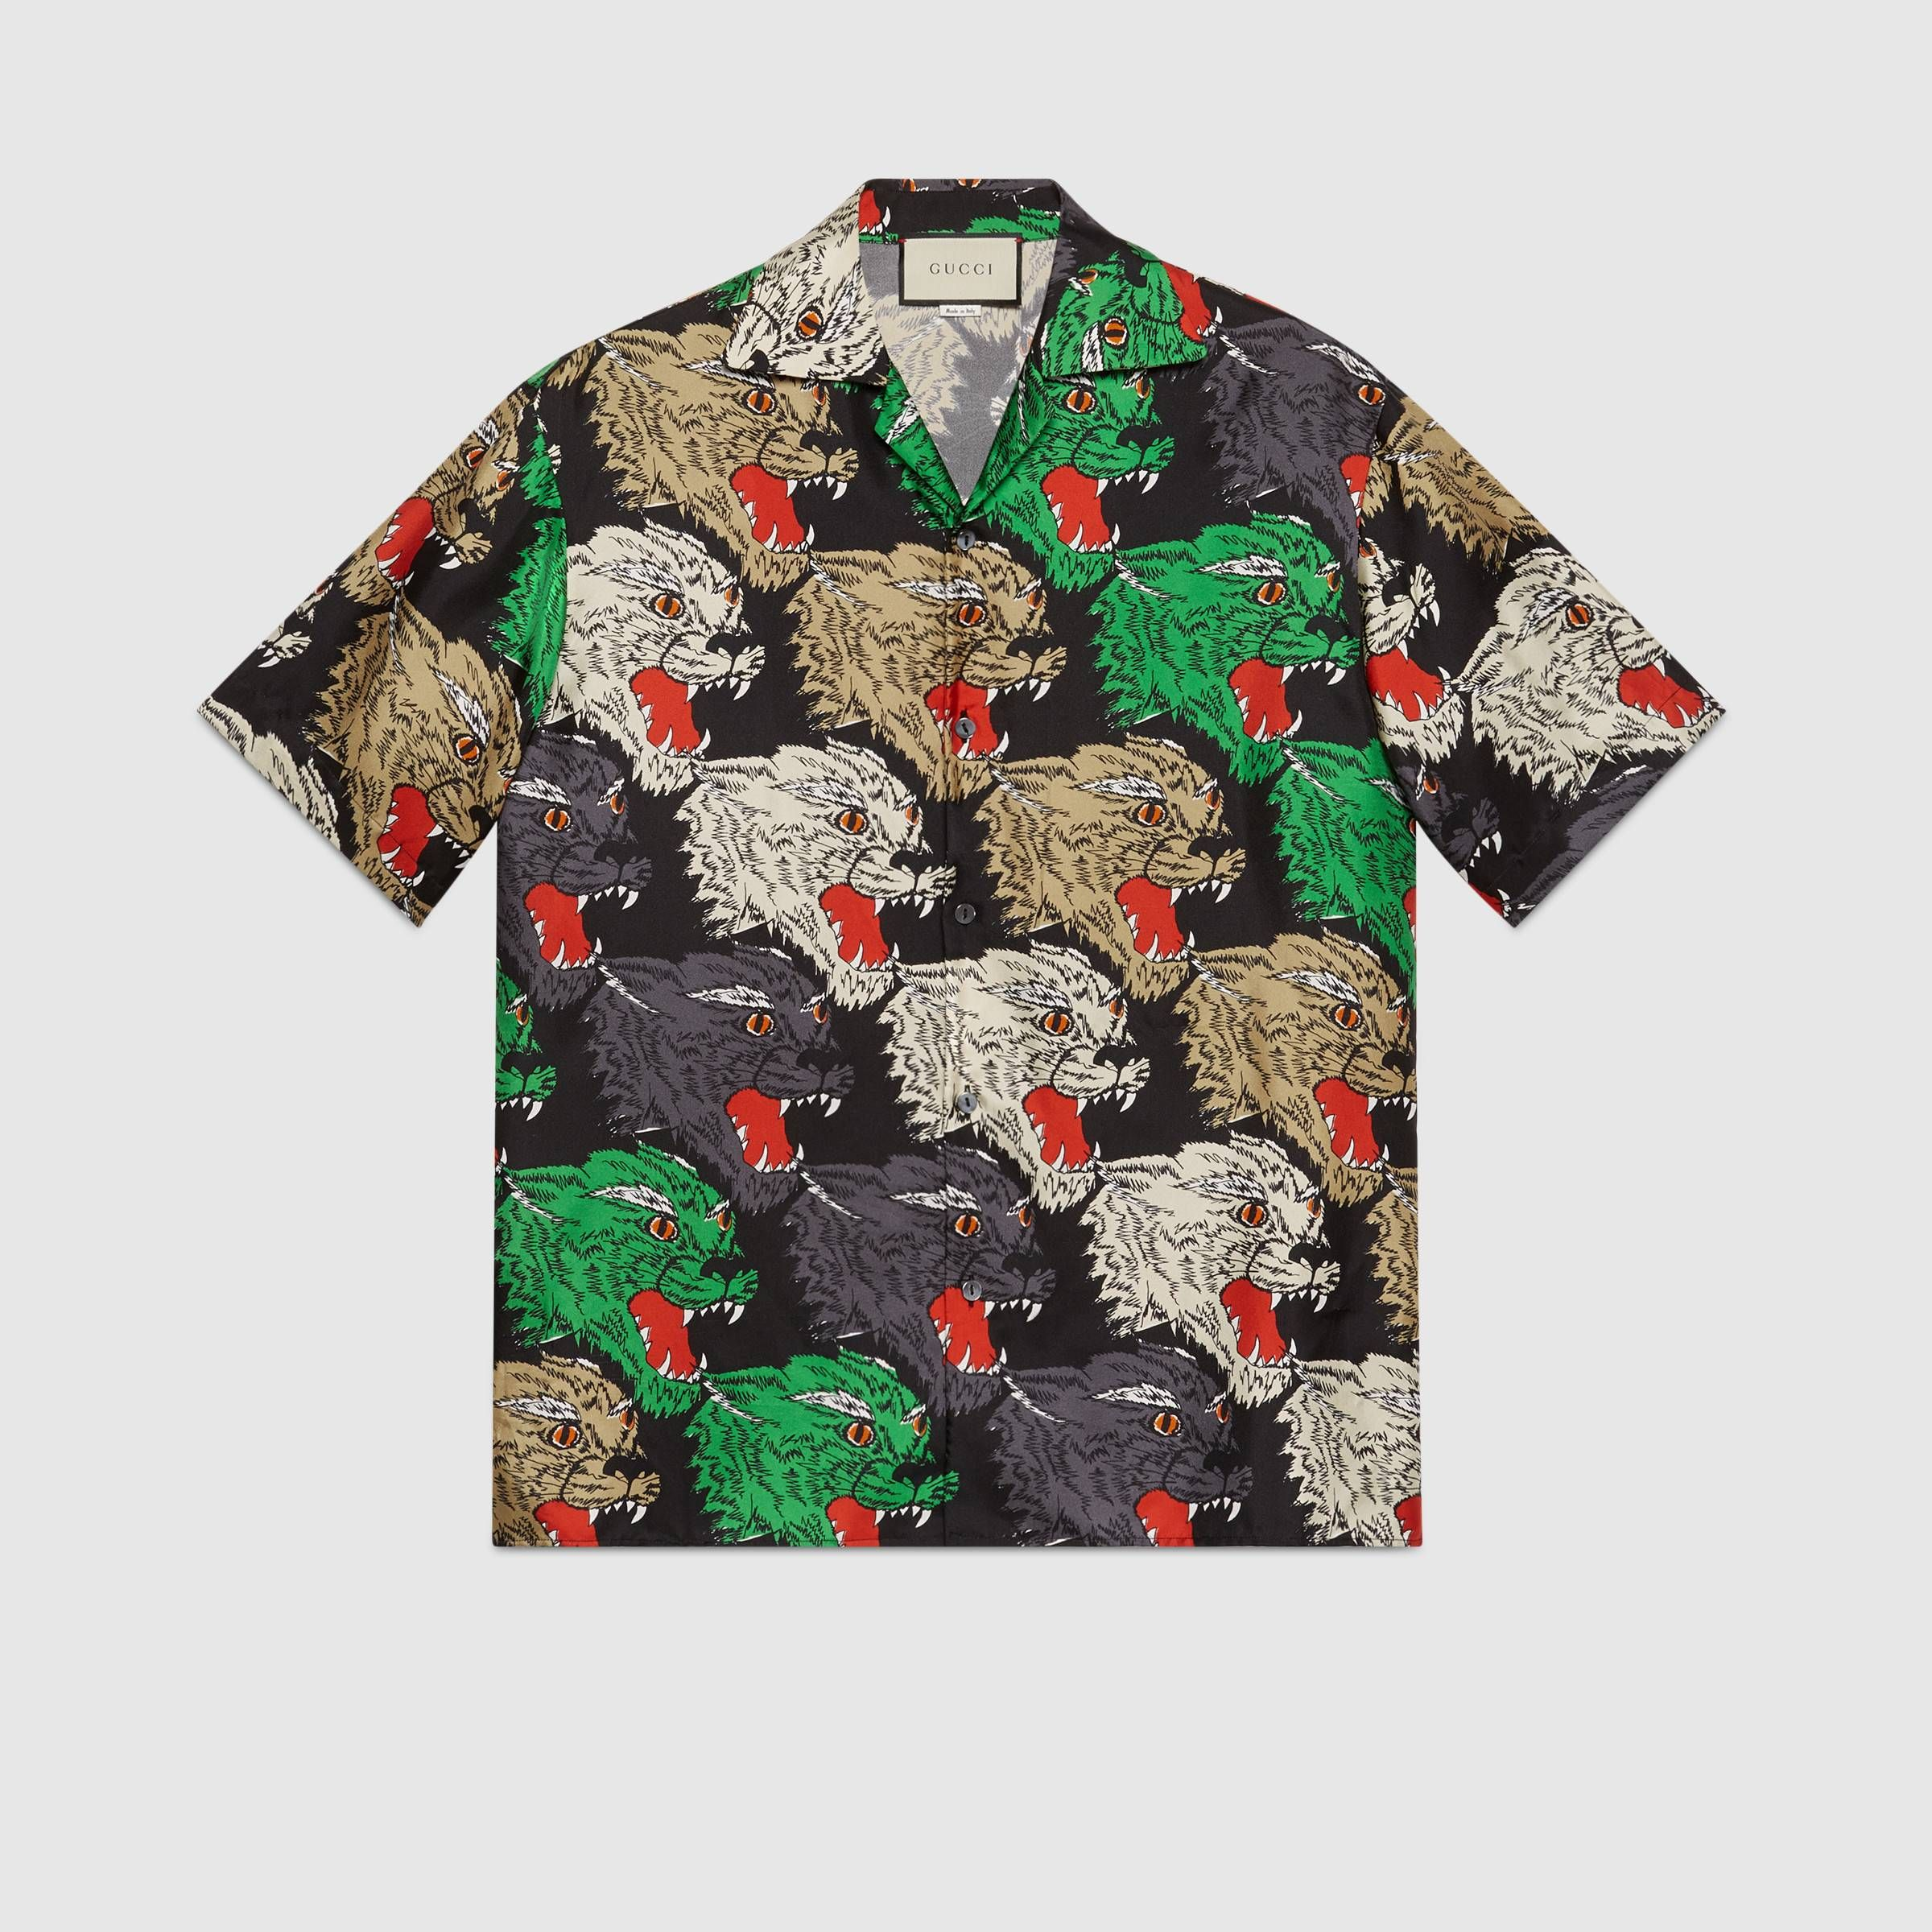 450810ef5 Panther face bowling shirt in Green, beige and black panther face print silk  twill | Gucci Men's Dress Shirts & Sports Shirts